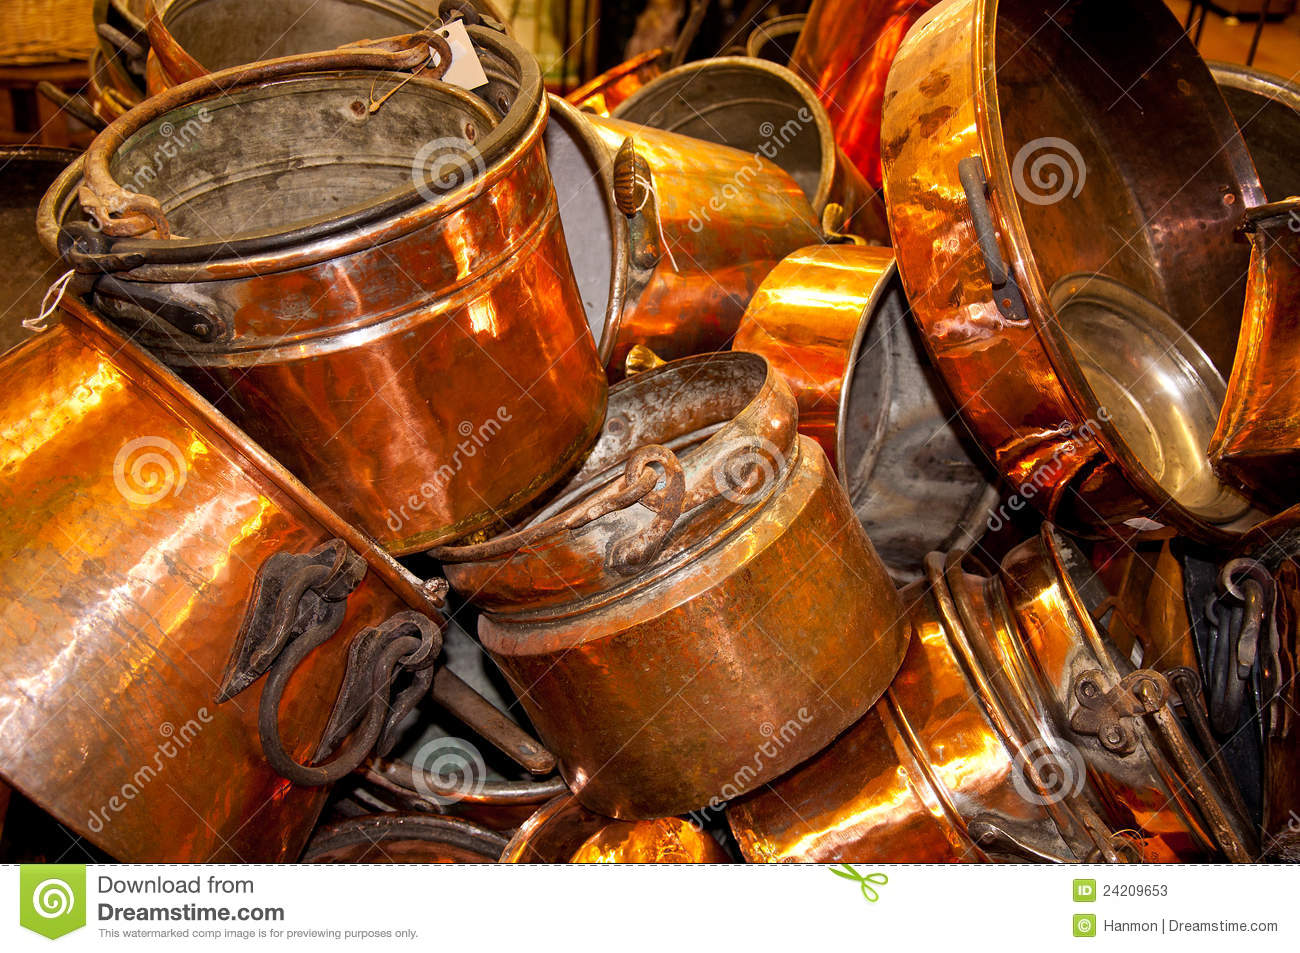 Old cooper pots and pans stock image. Image of stuff ...